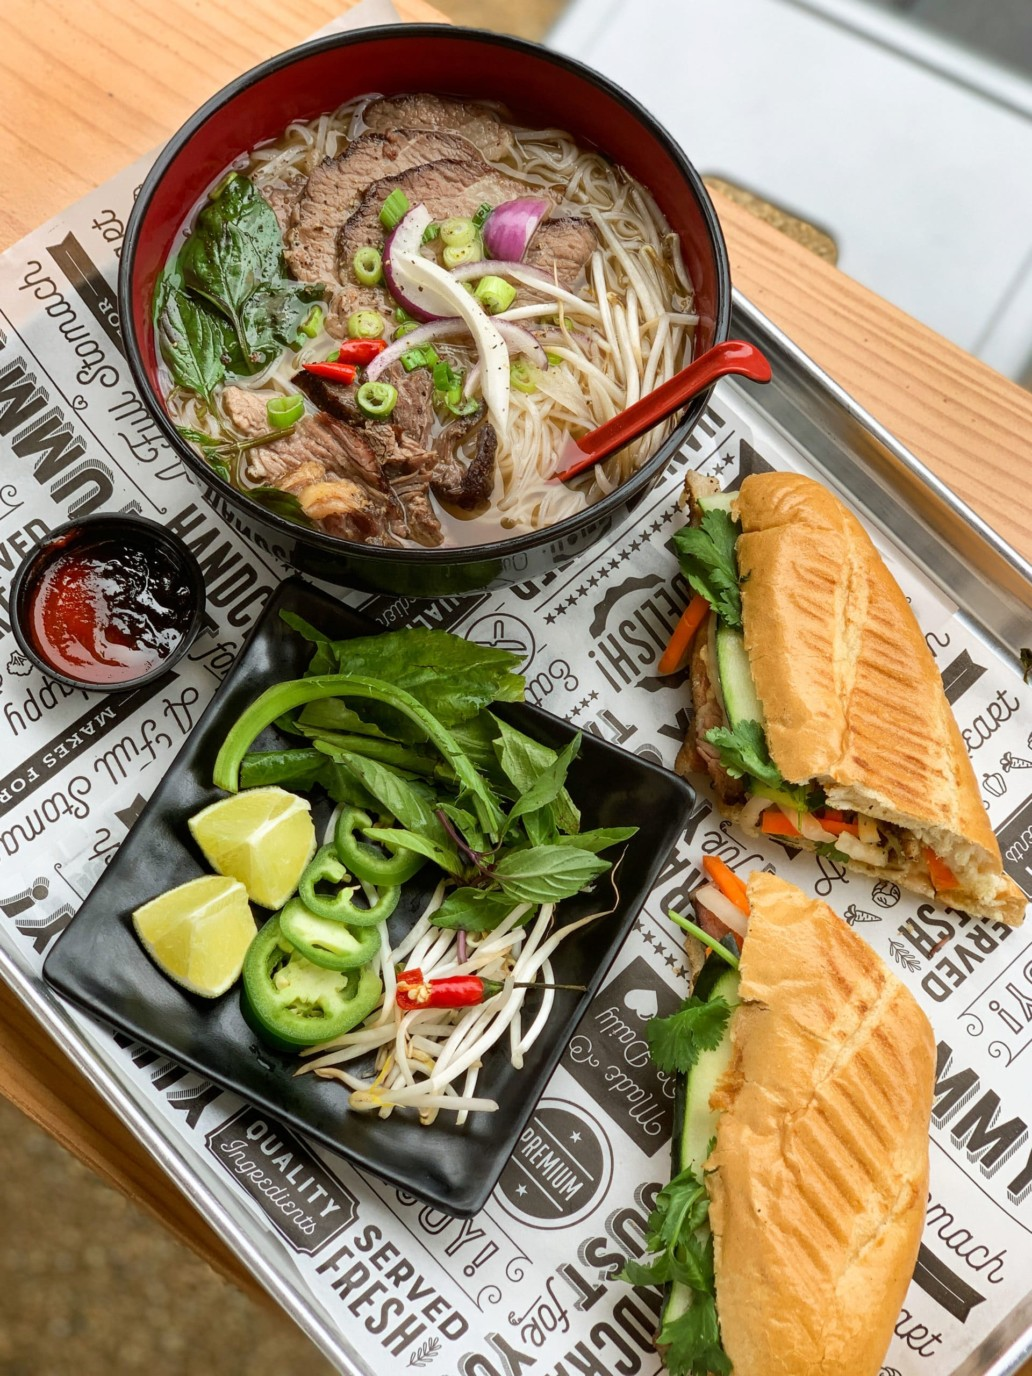 A tray of food featuring a bowl of Pho, a Bahn Mi sandwich, and a plate of vegetables.